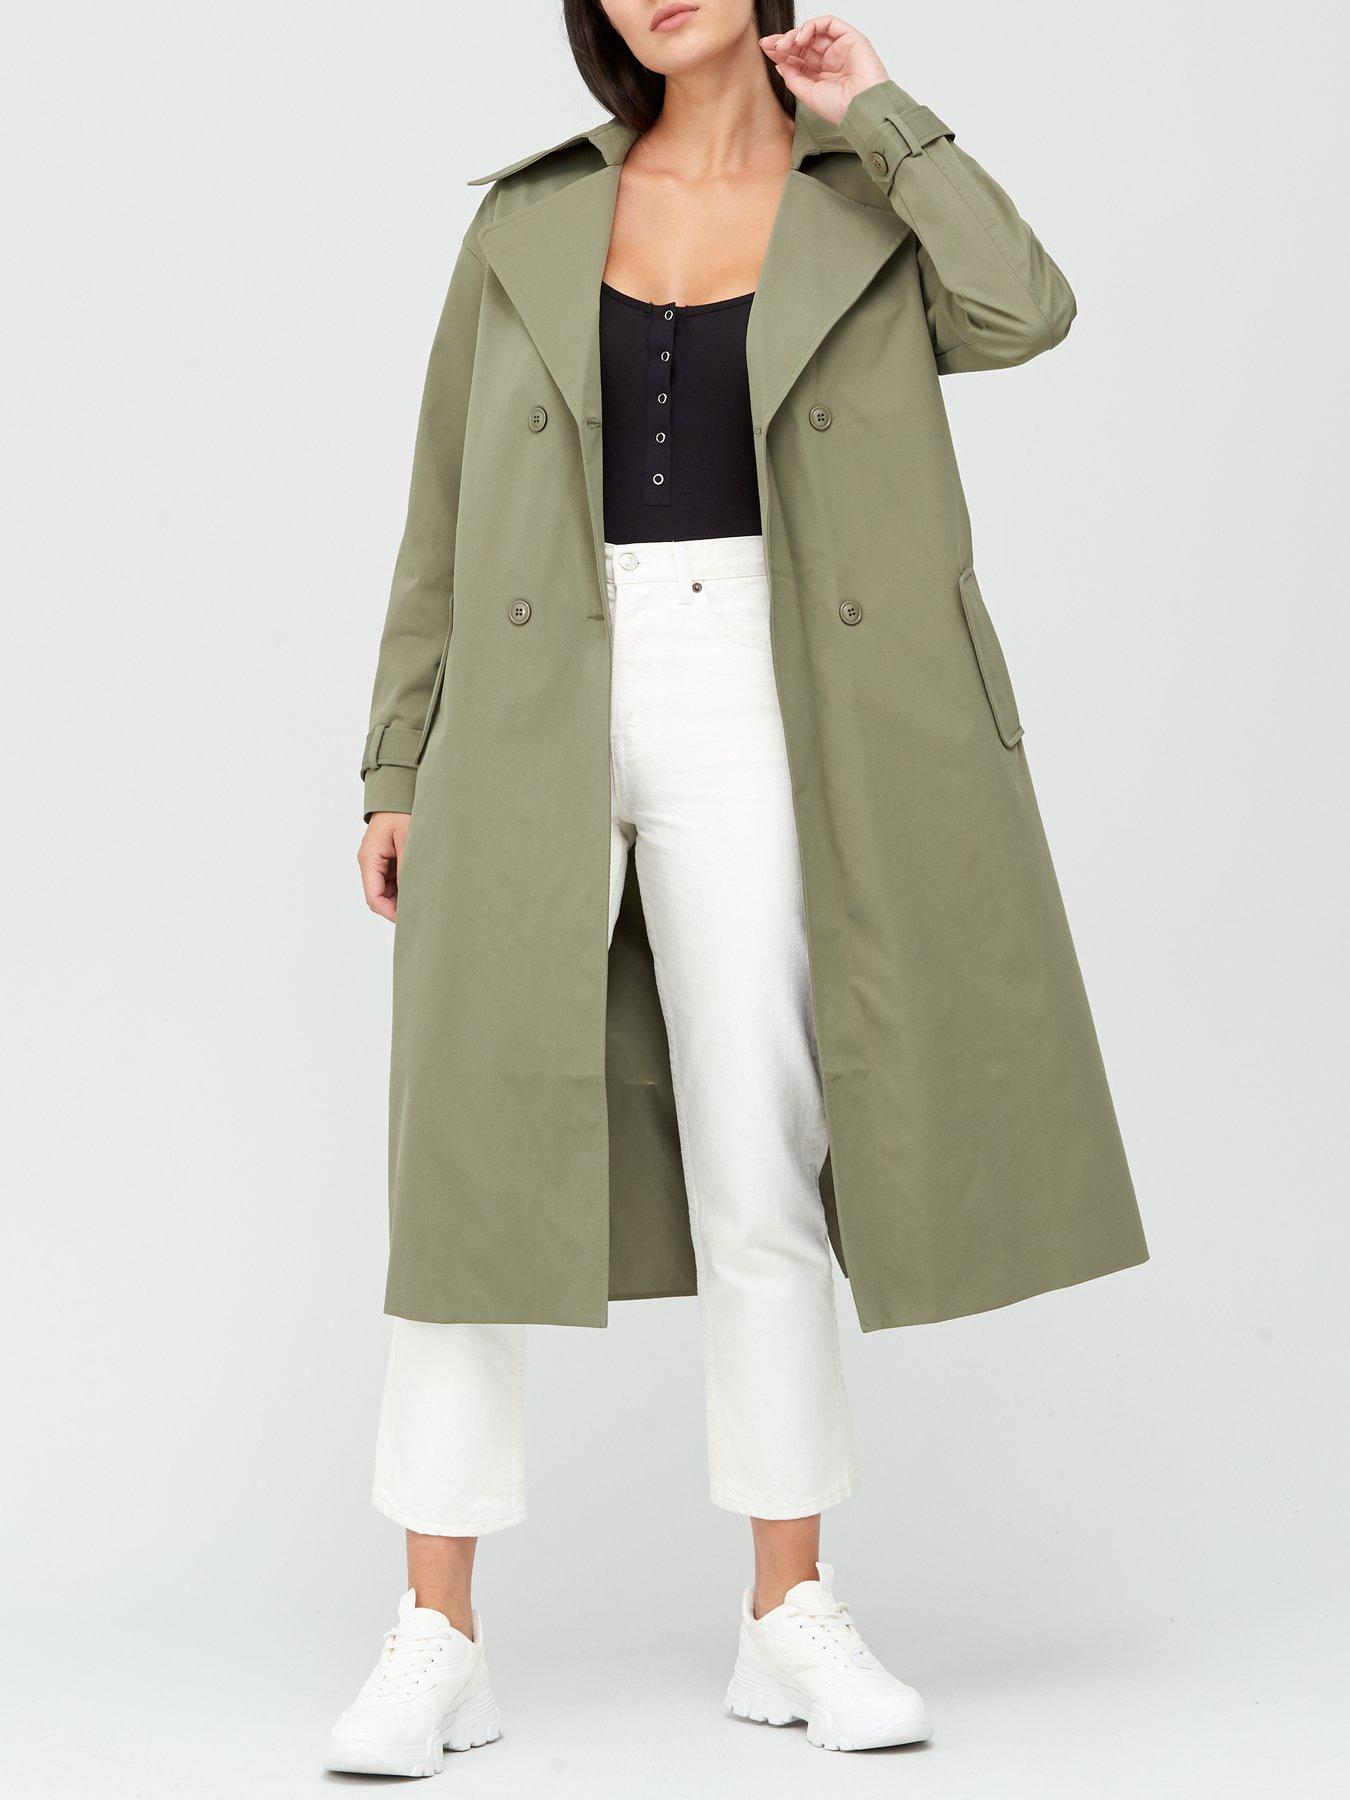 Trench Coats | Women's Trenches | Very.co.uk